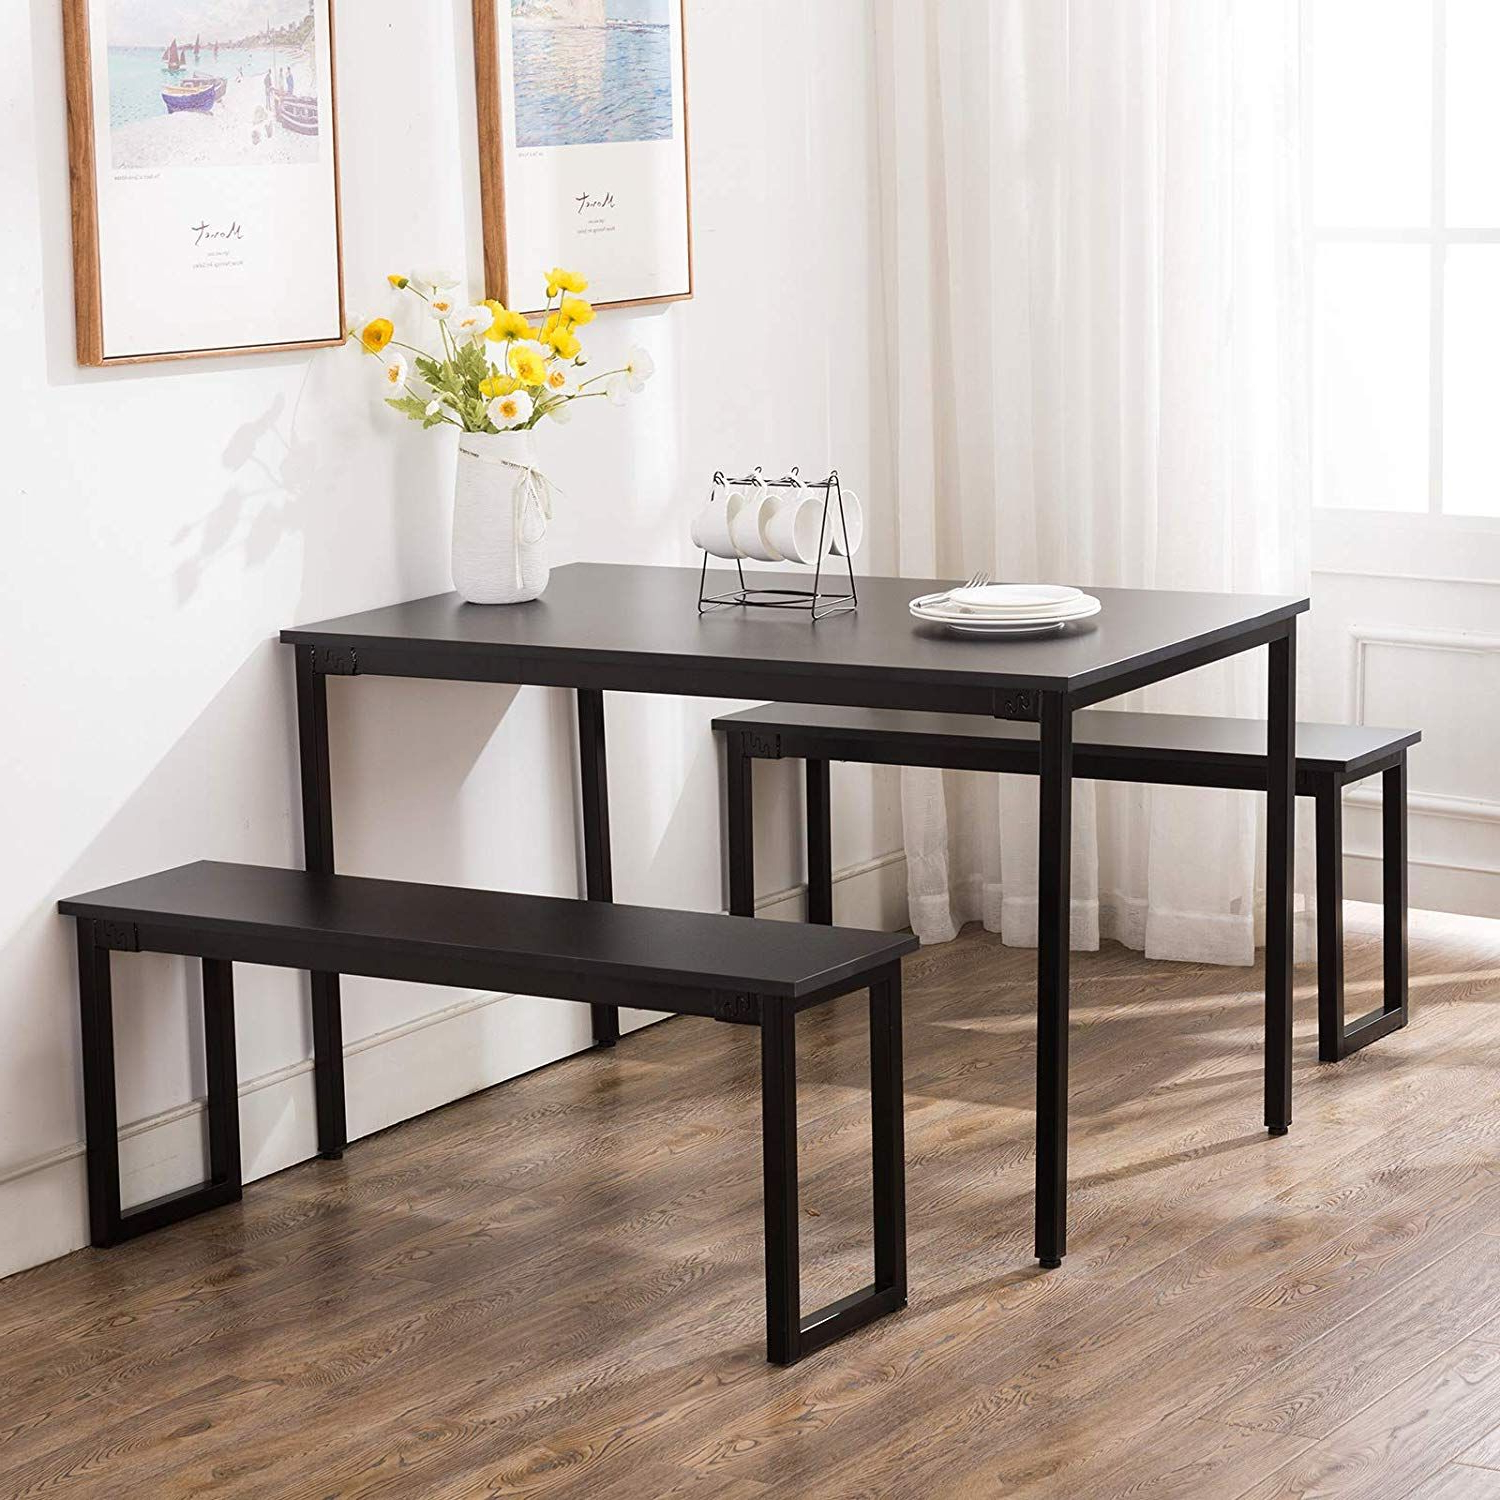 Ephraim 5 Piece Dining Sets Regarding Latest Amazon: Artist Hand Kitchen Dining Table Set Kitchen Dining (View 11 of 20)